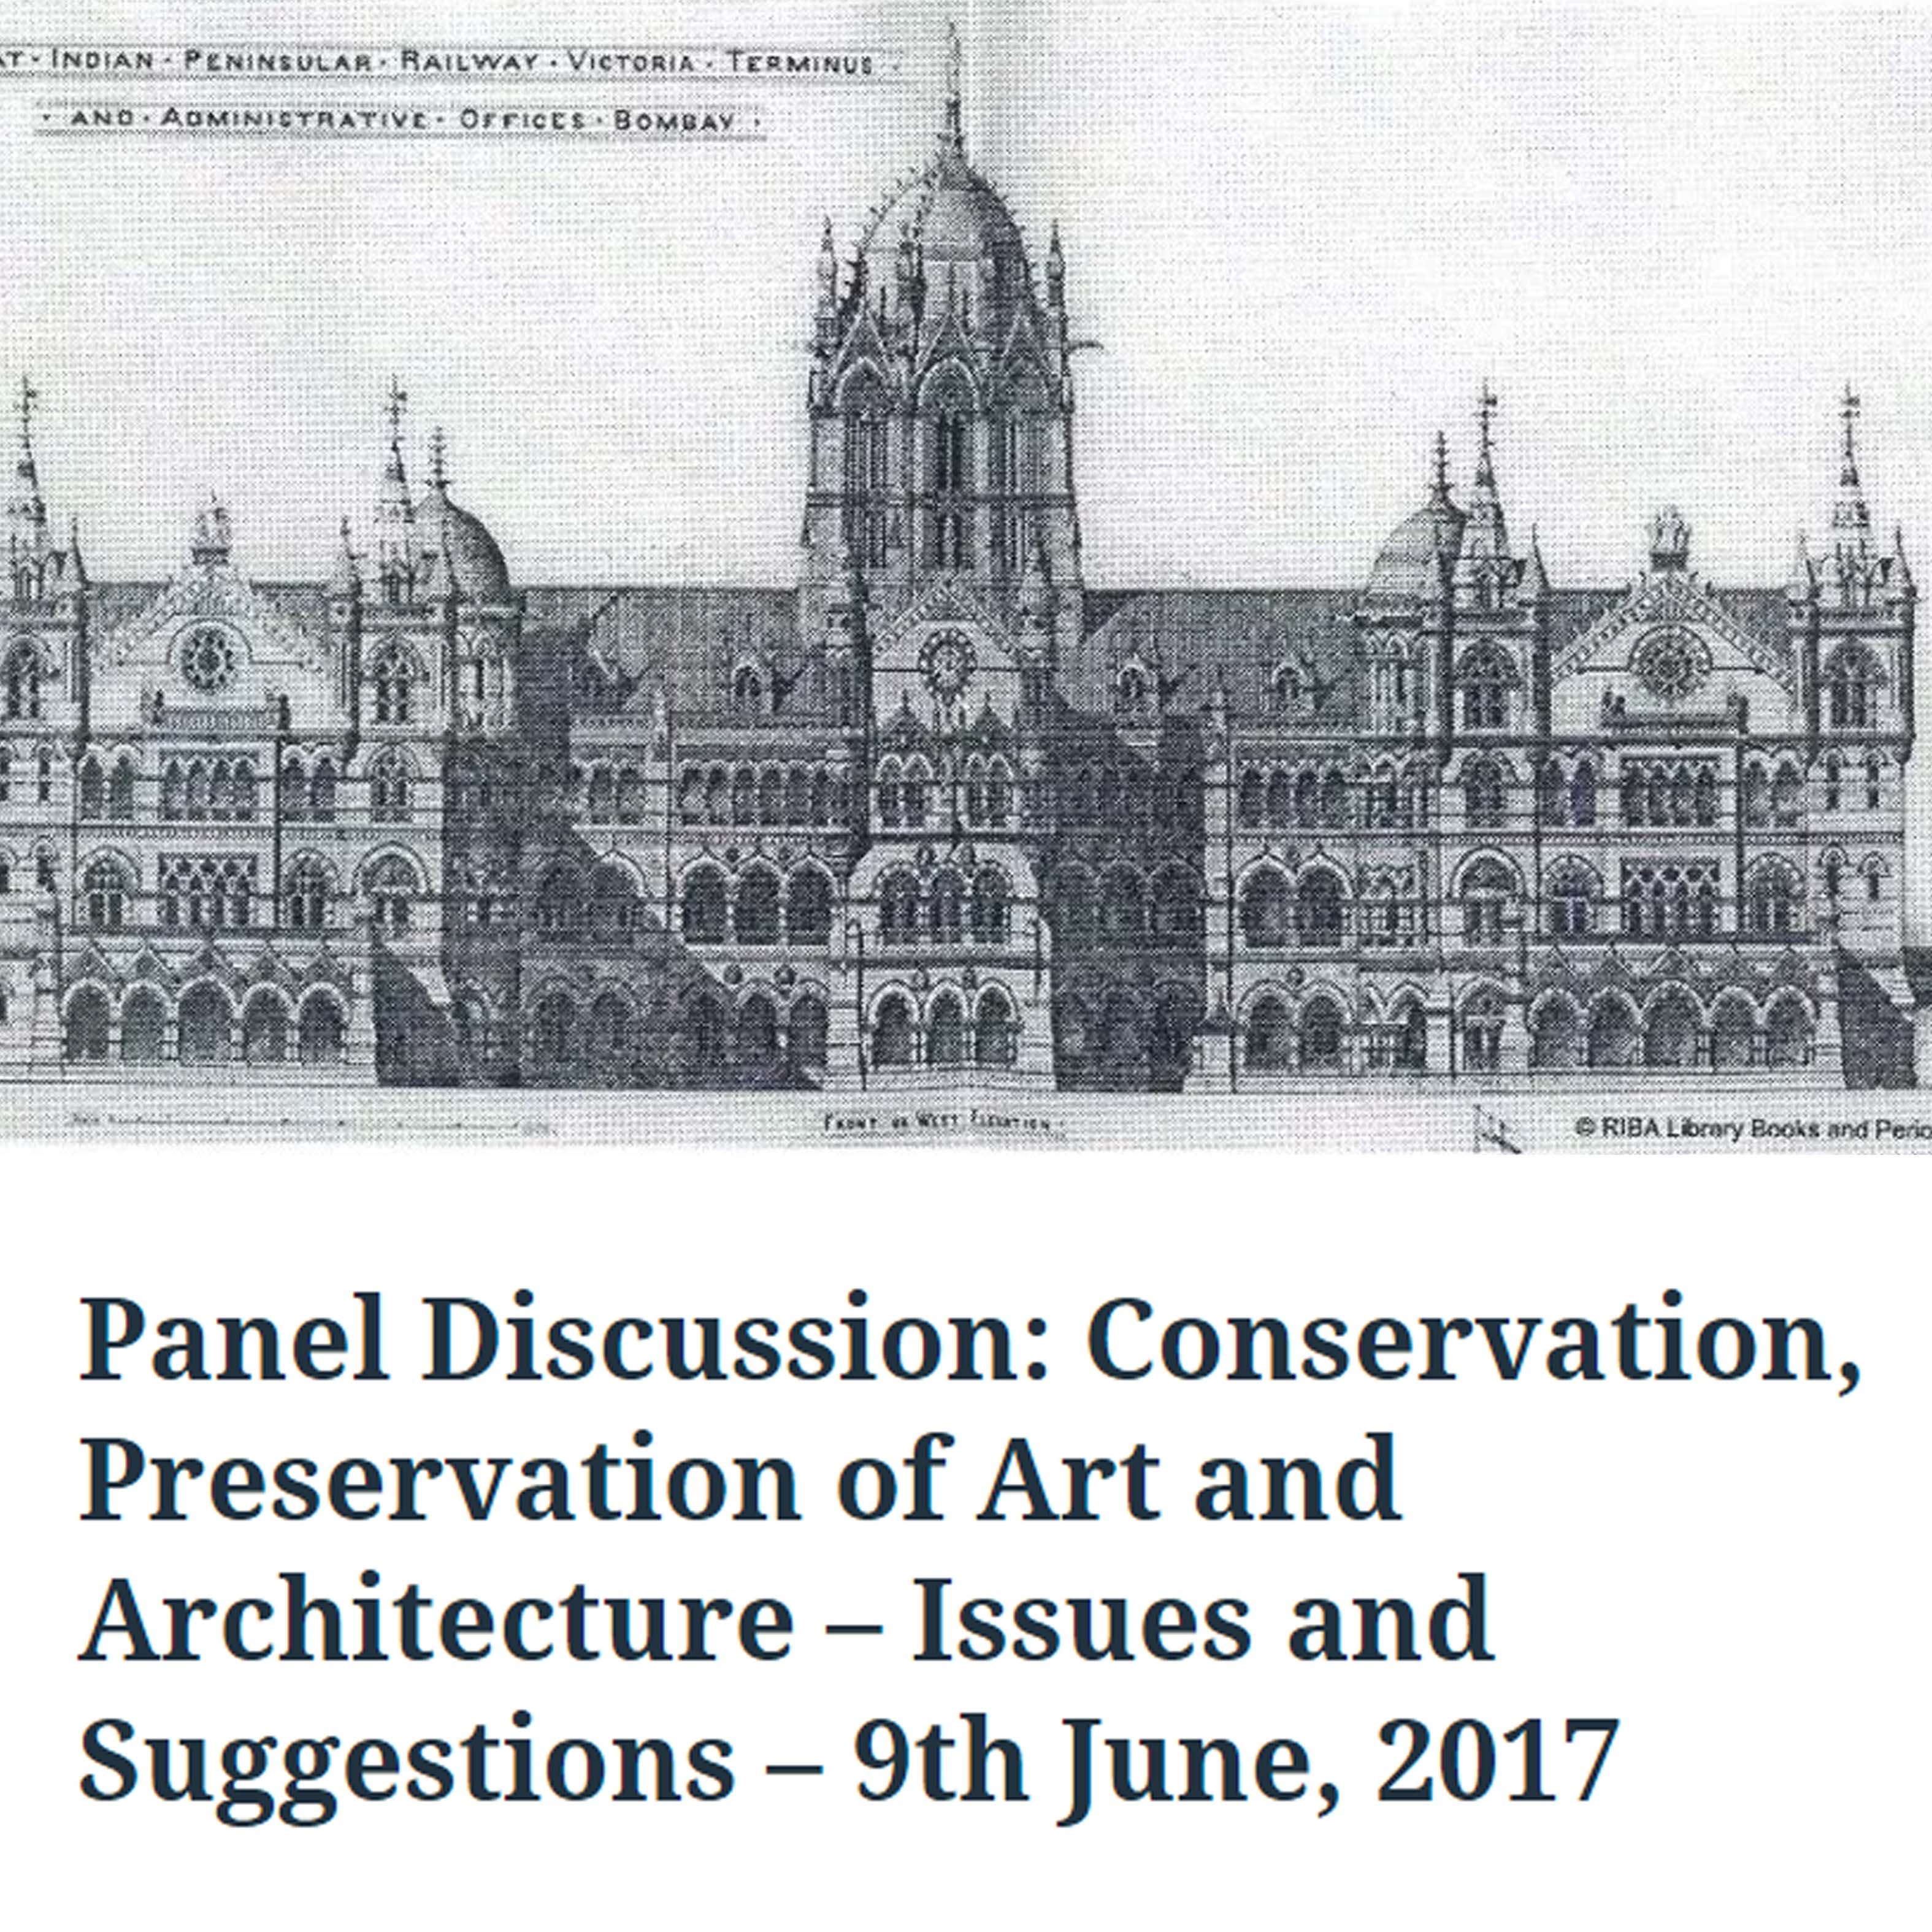 Panel Discussion: Conservation, Preservation of Art and Architecture - Issues and Suggestions � 9th June, 2017, The Oxford and Cambridge Society of India, 17th May 2017